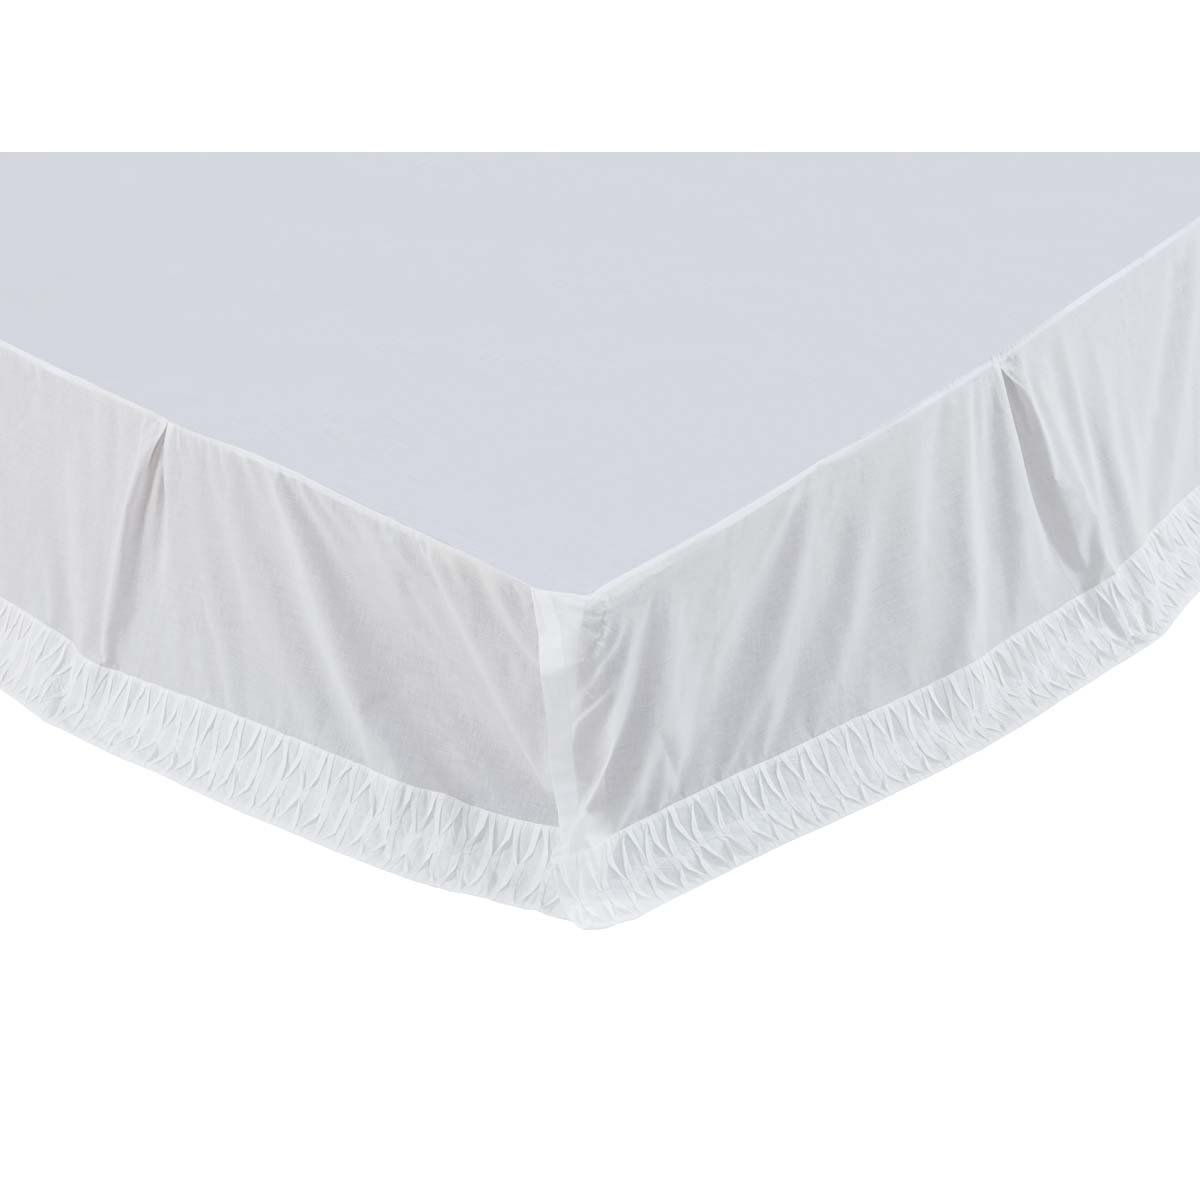 Adelia Bed Skirt